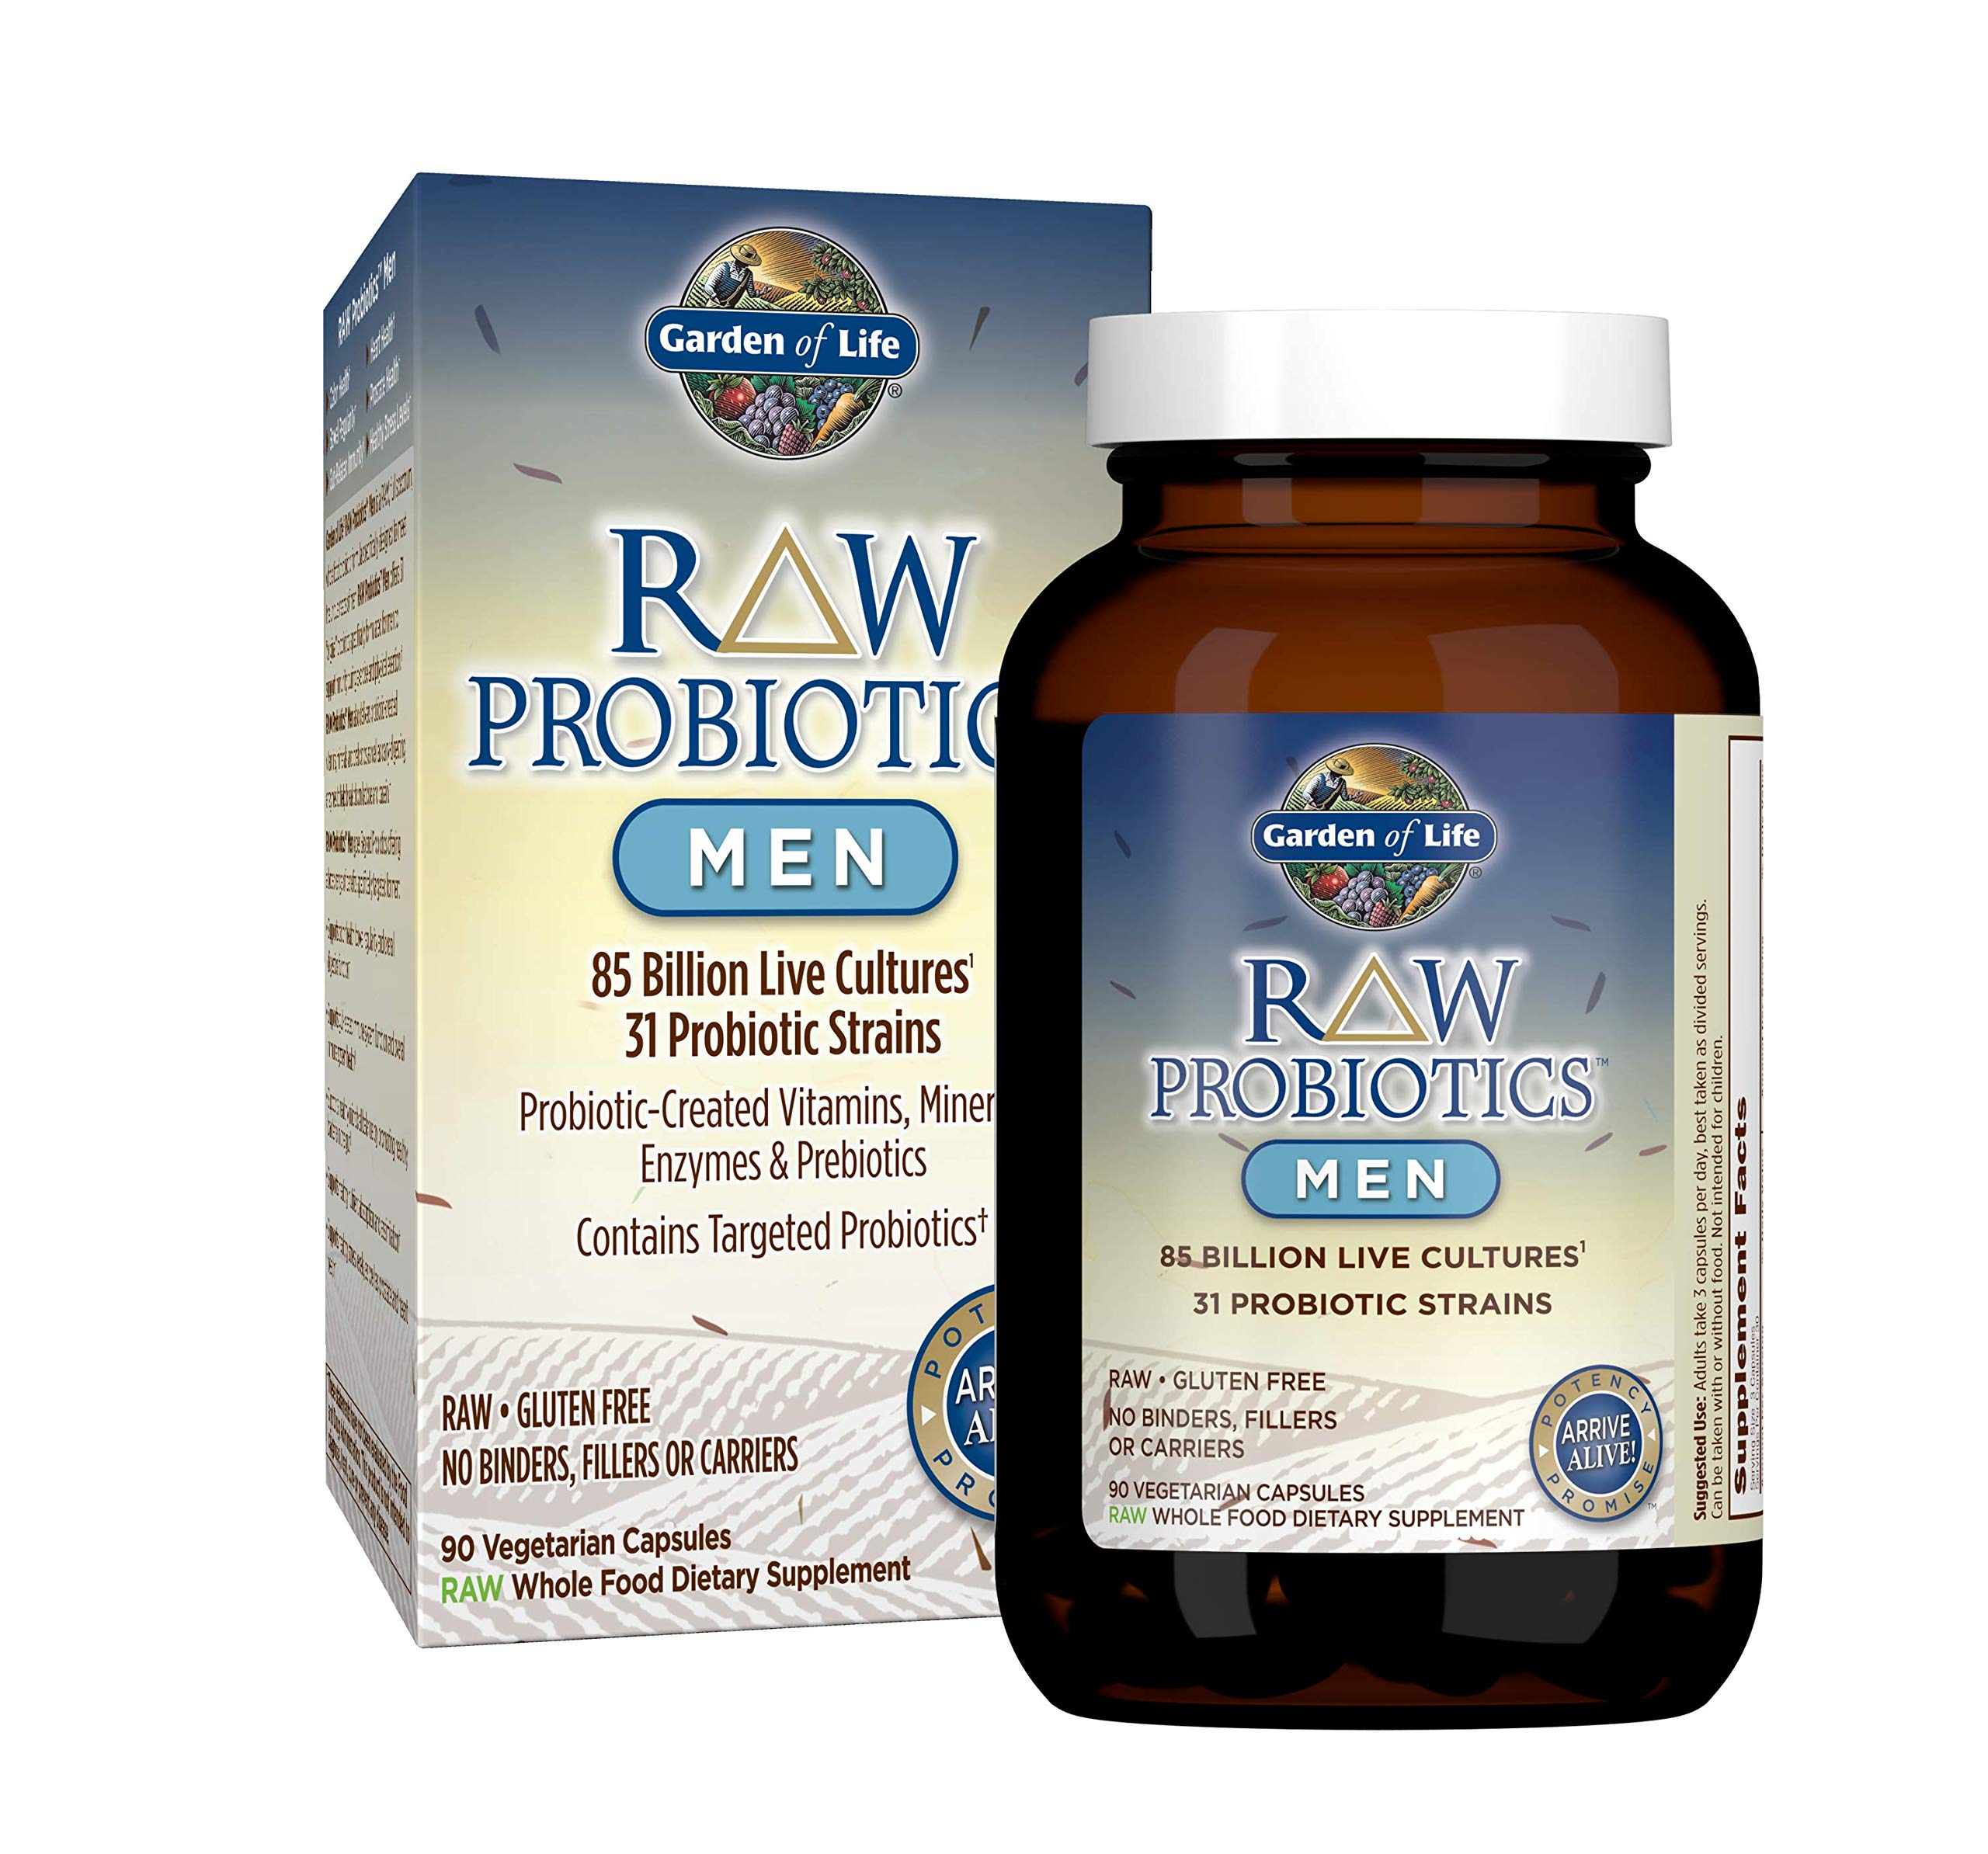 Garden of Life - RAW Probiotics Men - Acidophilus and Bifidobacteria Probiotic-Created Vitamins, Minerals, Enzymes and Prebiotics - Gluten and Soy-Free, Non-GMO - 90 Vegetarian Capsules by Garden of Life